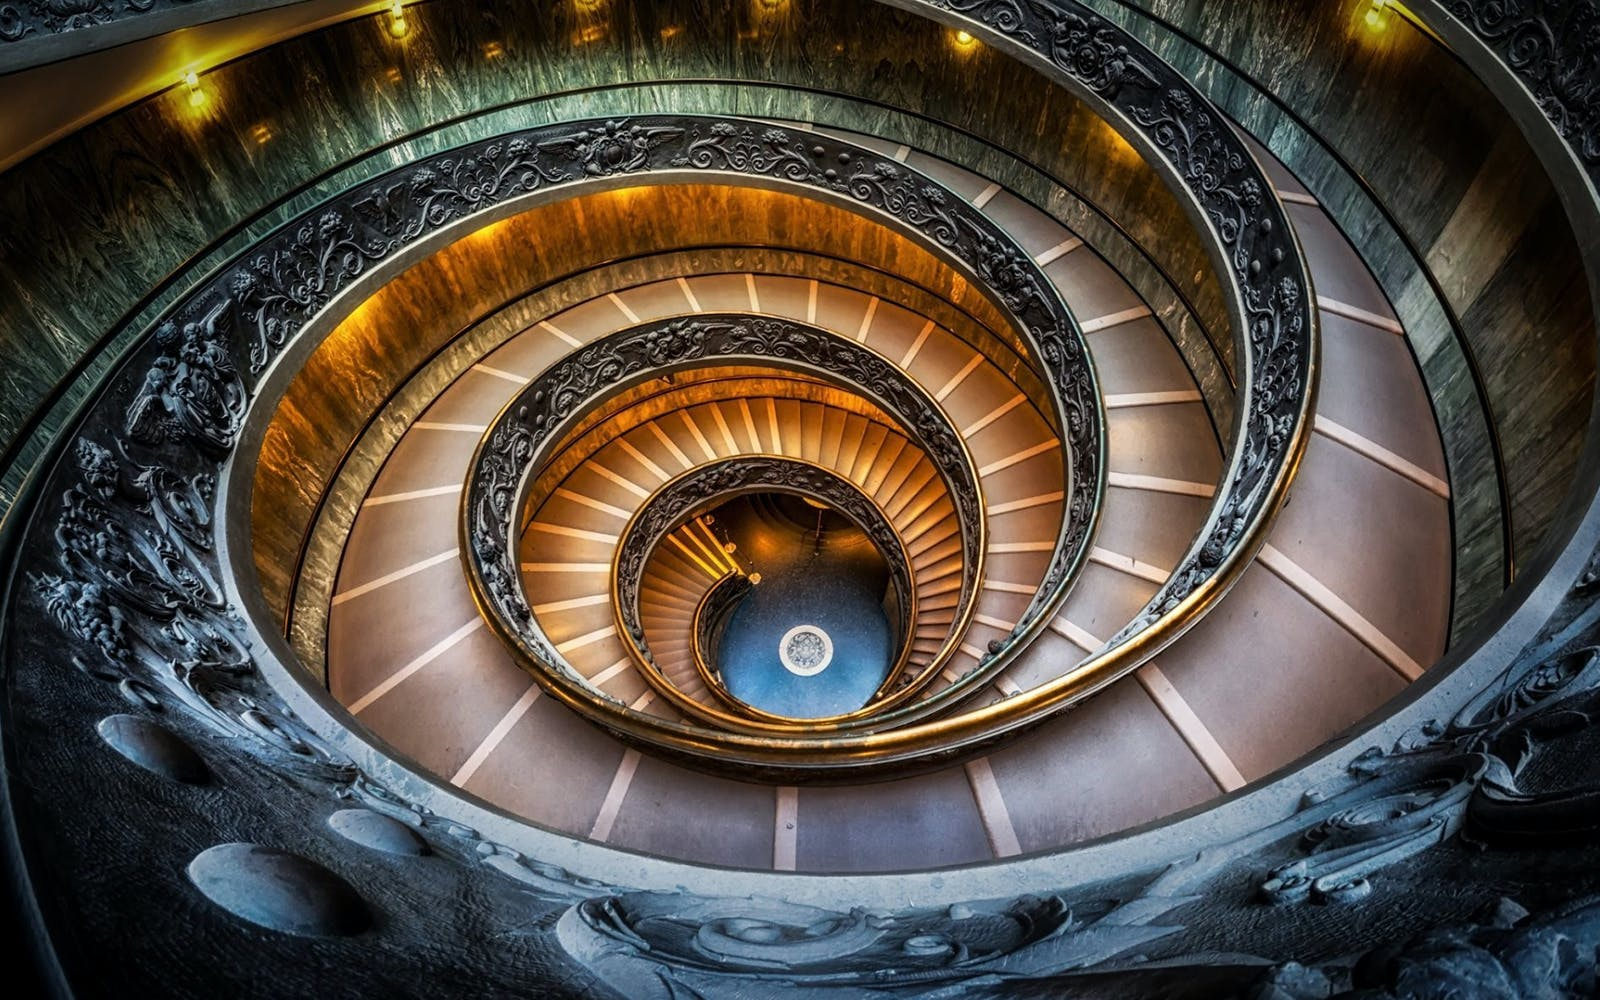 Skip the Line Tickets with Audio-guide to the Vatican Museums and Sistine Chapel